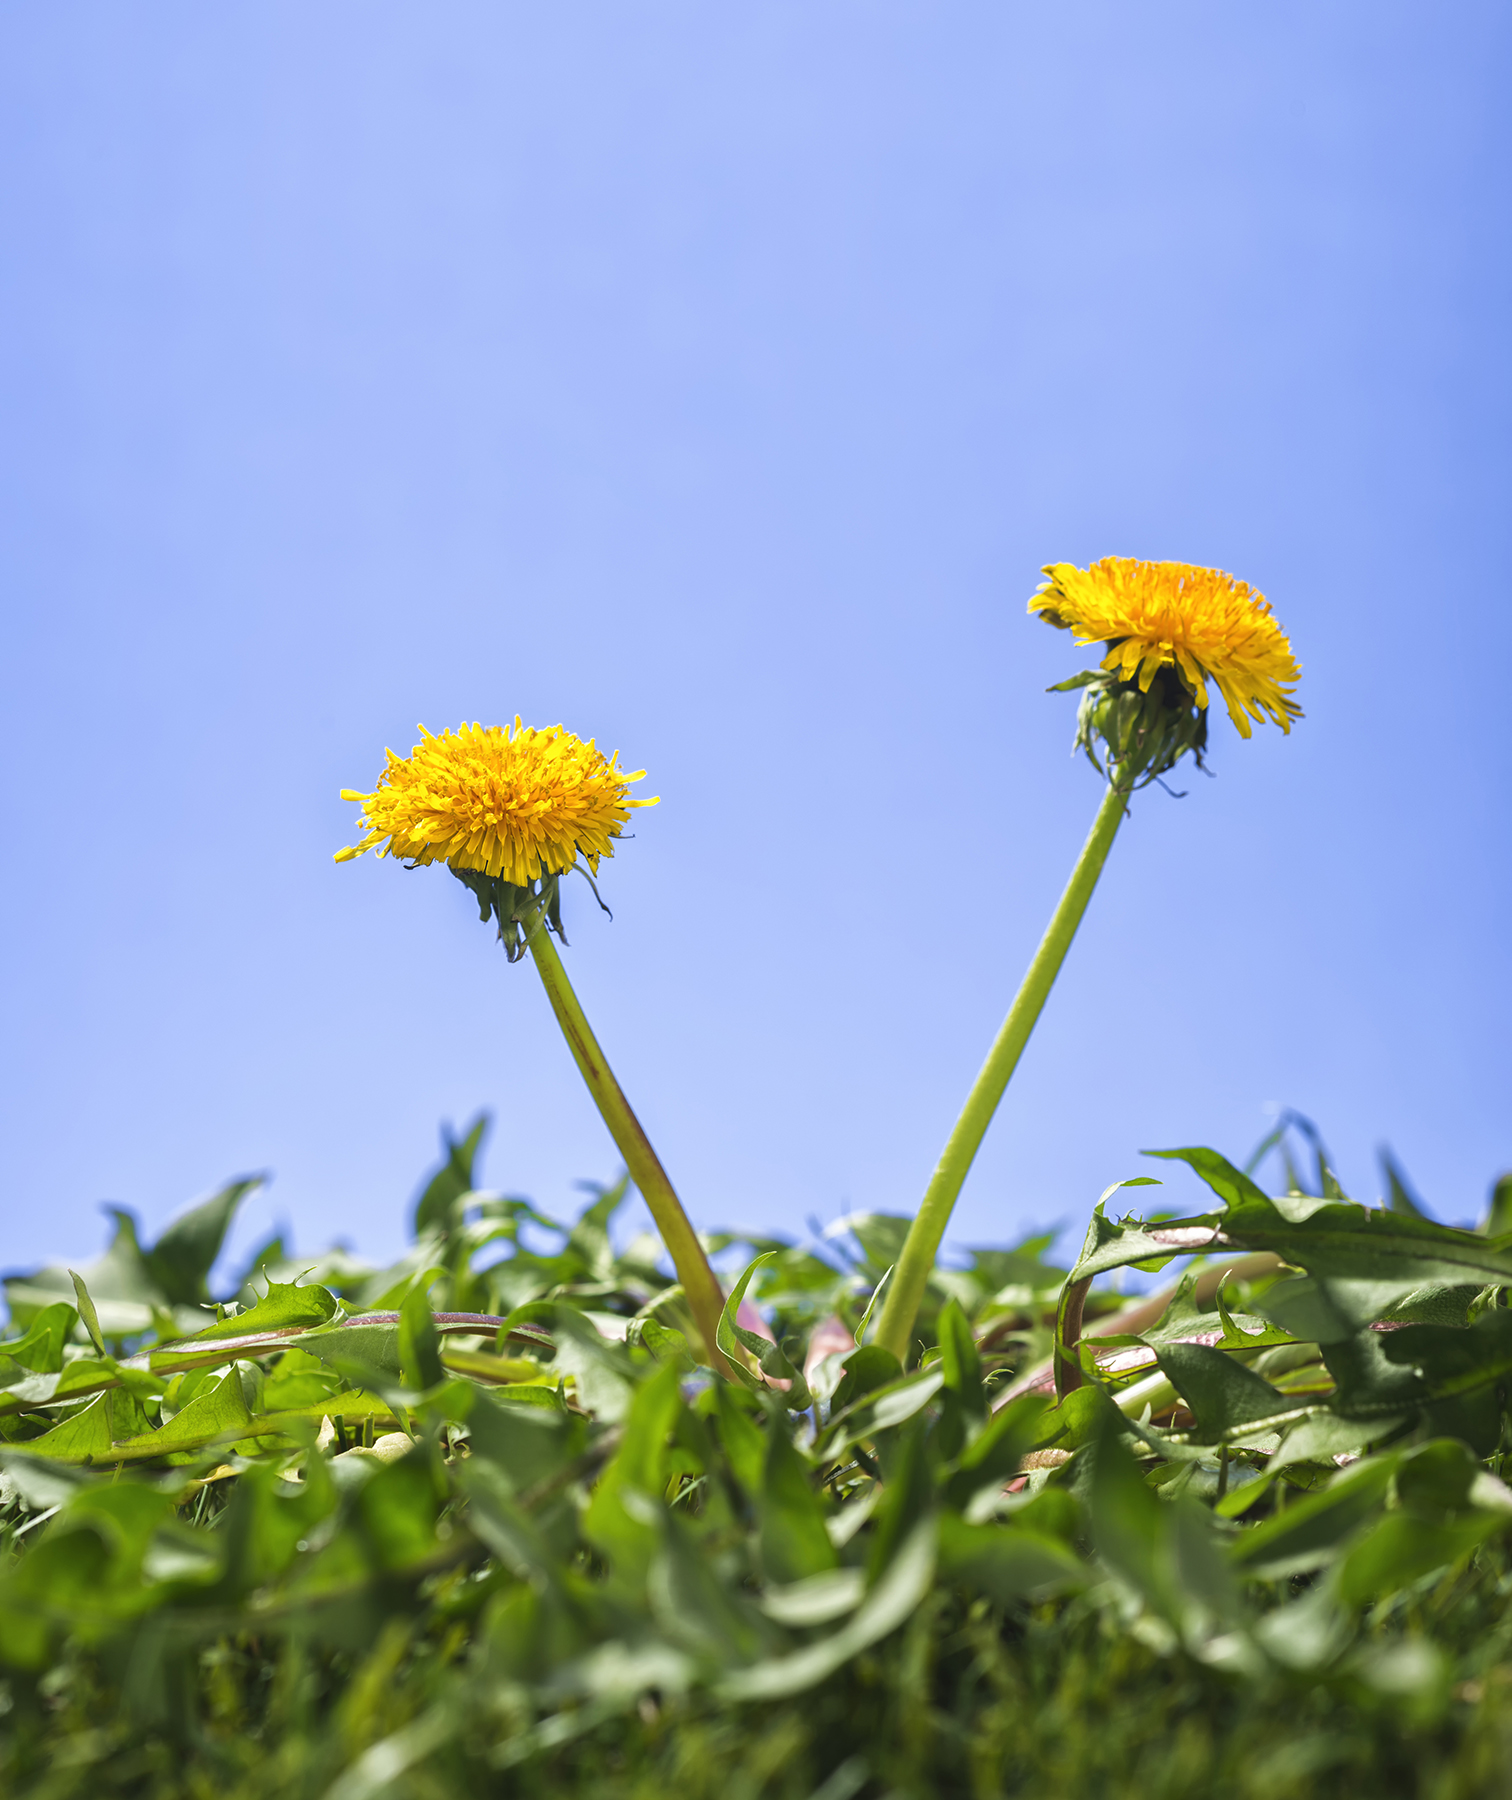 Dandelions growing on lawn